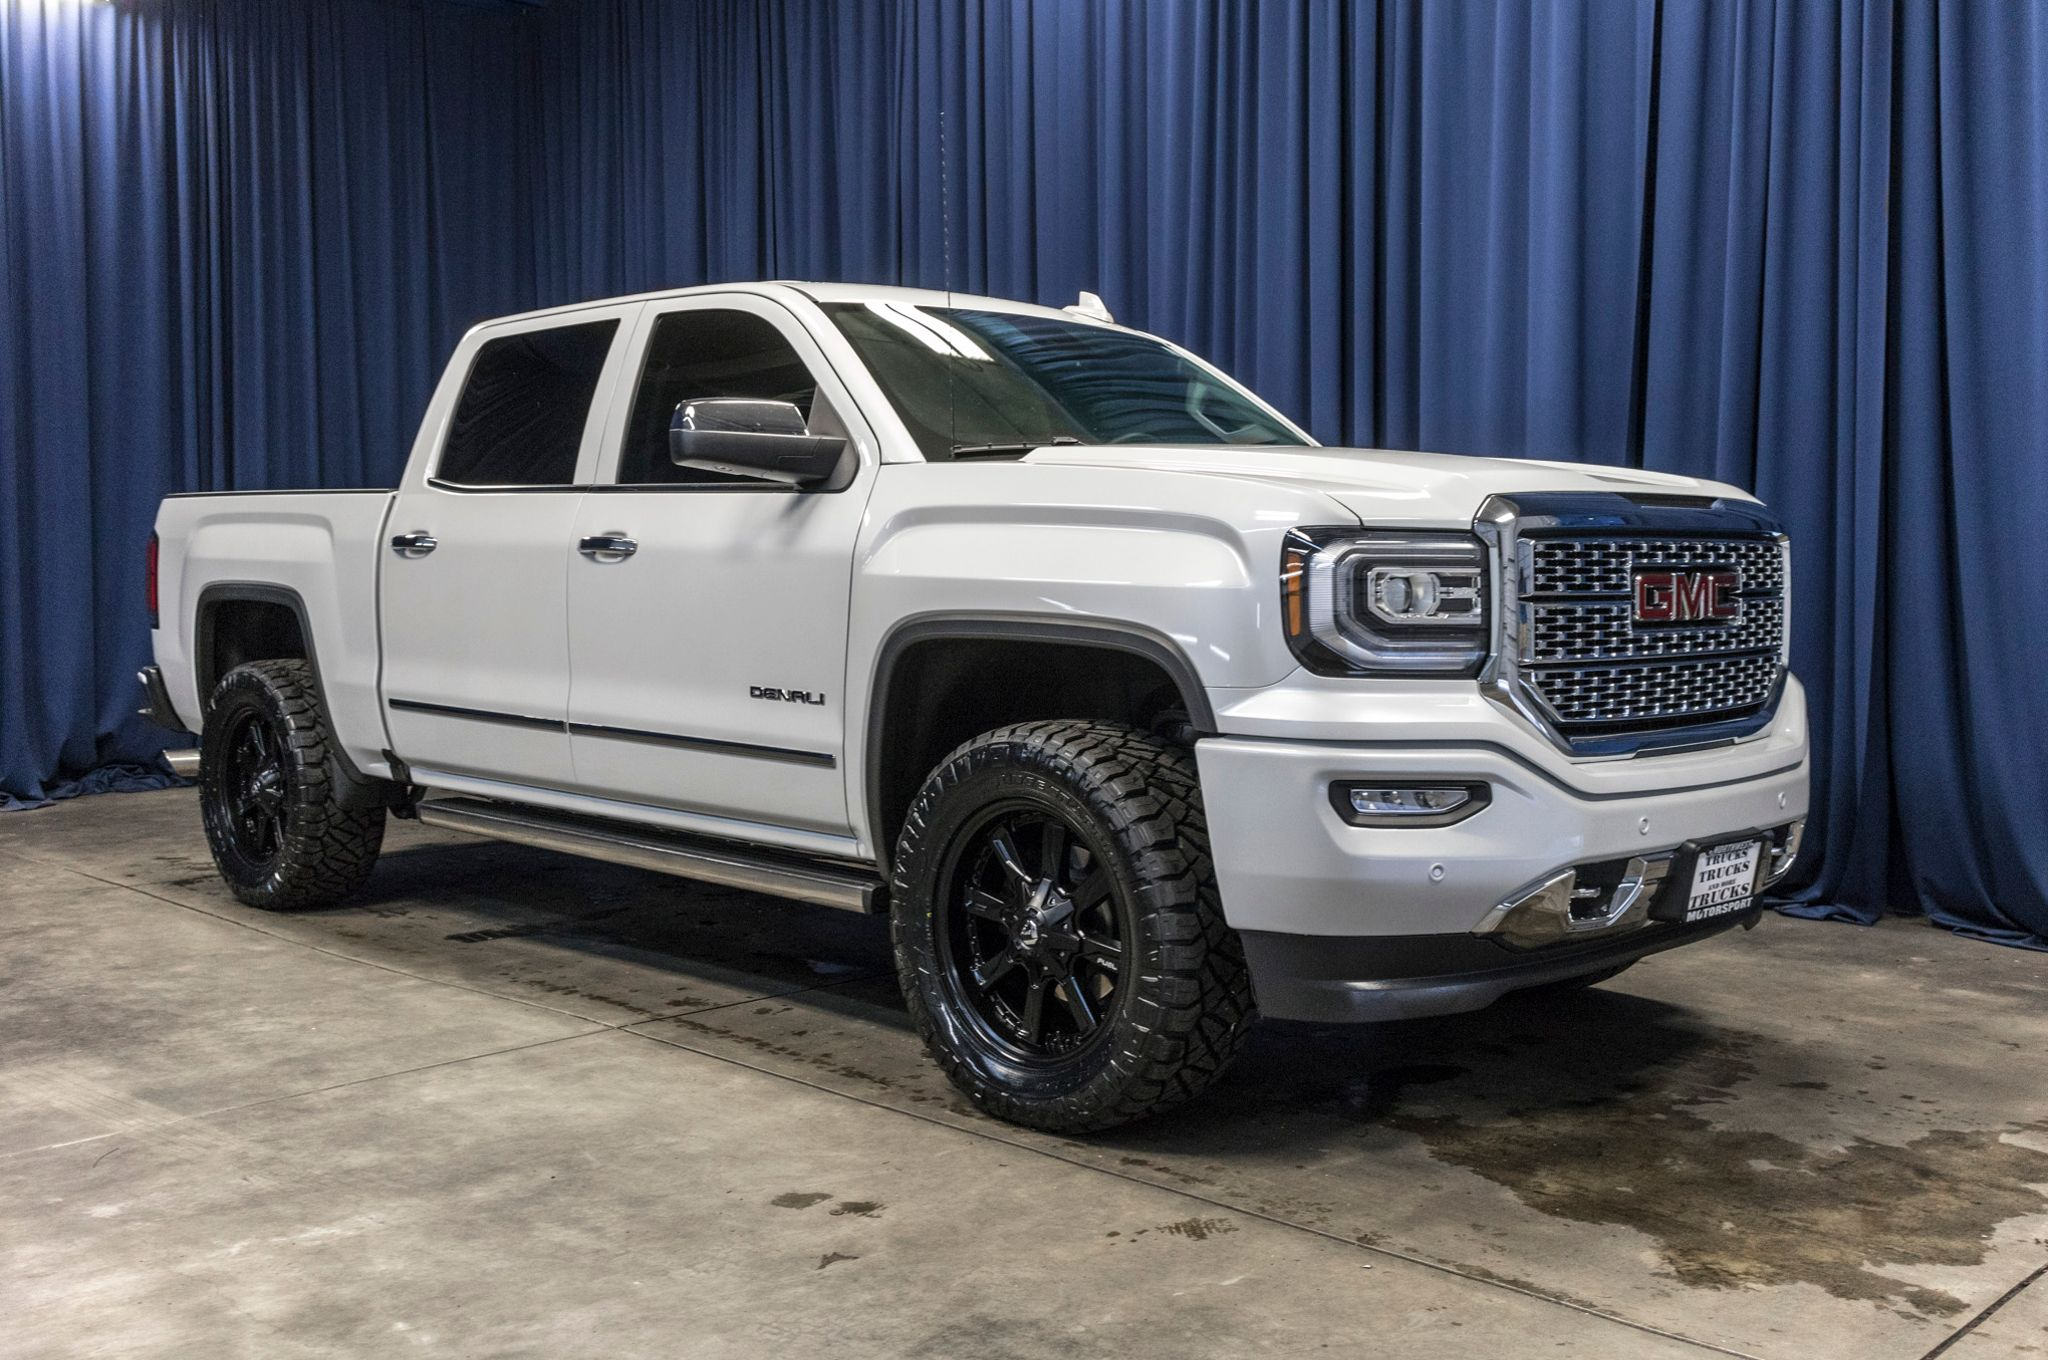 used lifted 2017 gmc sierra 1500 denali 4x4 truck for sale northwest motorsport. Black Bedroom Furniture Sets. Home Design Ideas